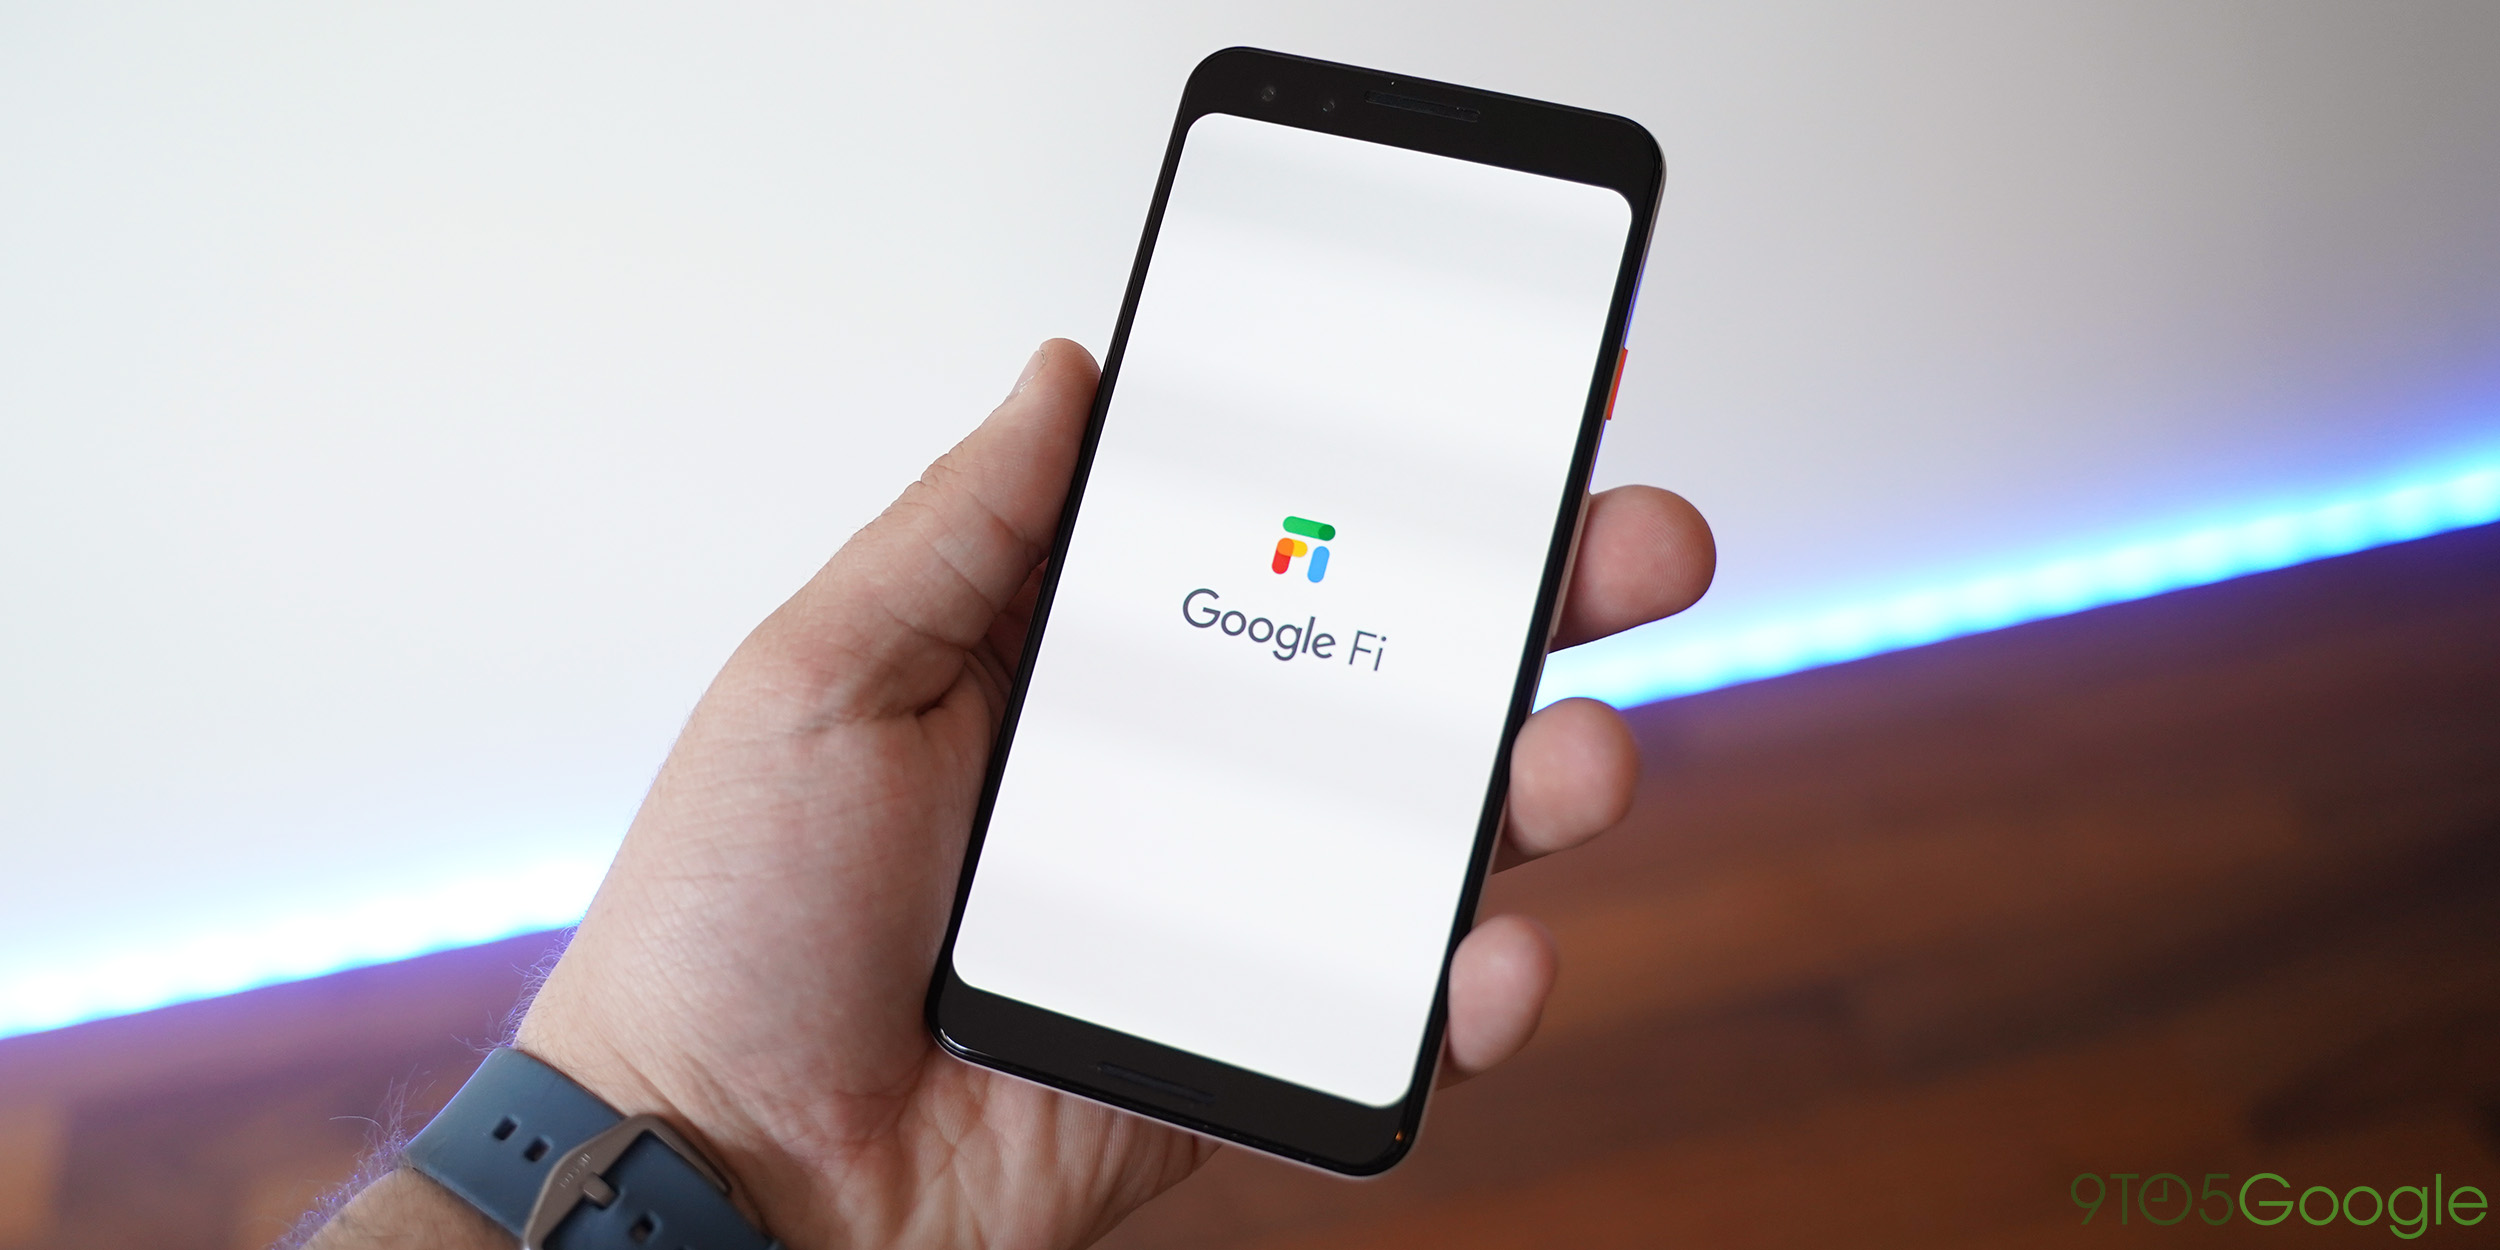 Google Fi shutting down convenient 'Group Repay' feature in September